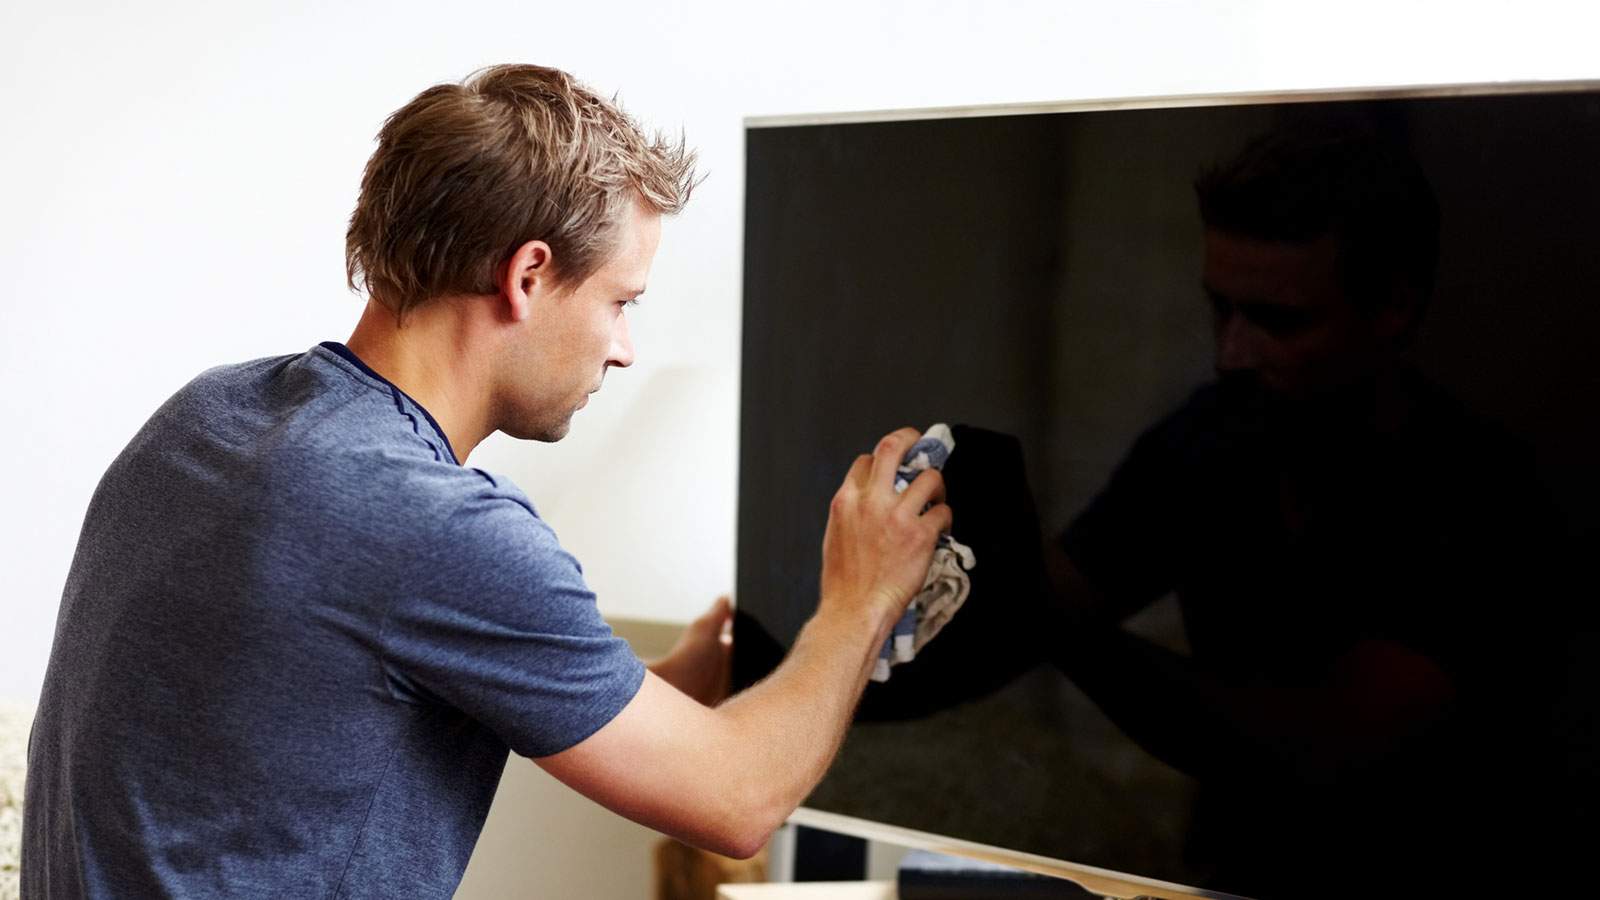 Man using a cloth to wipe down a flat screen TV